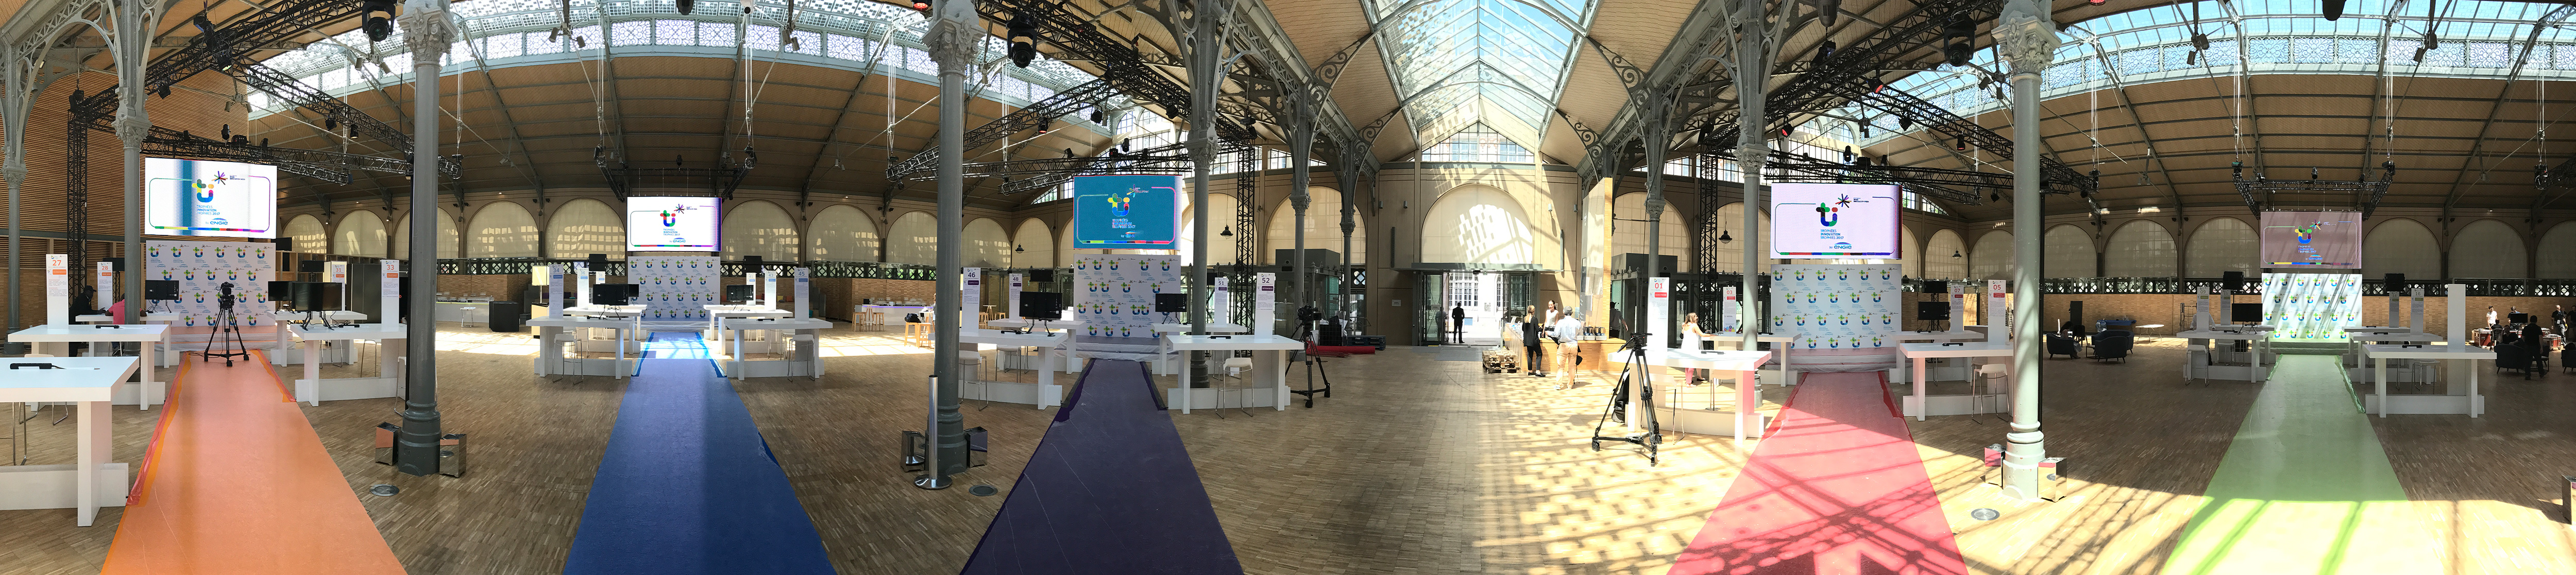 artcomvideo-engie-innovation-day-15